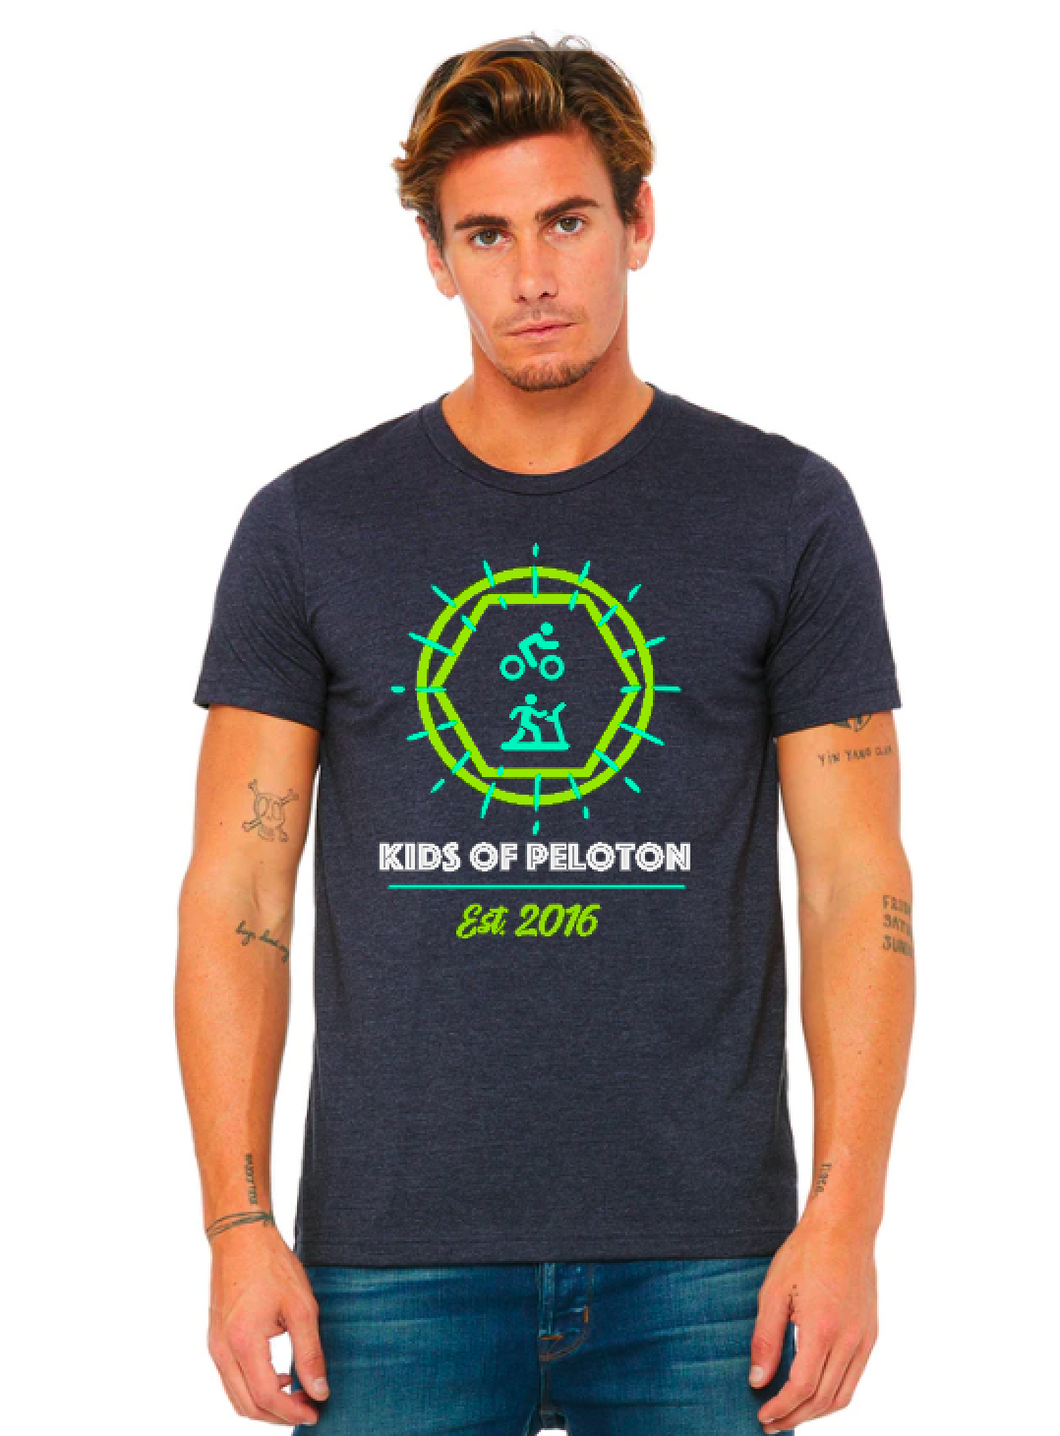 Kids of Peloton Est 2016 - Unisex Tee